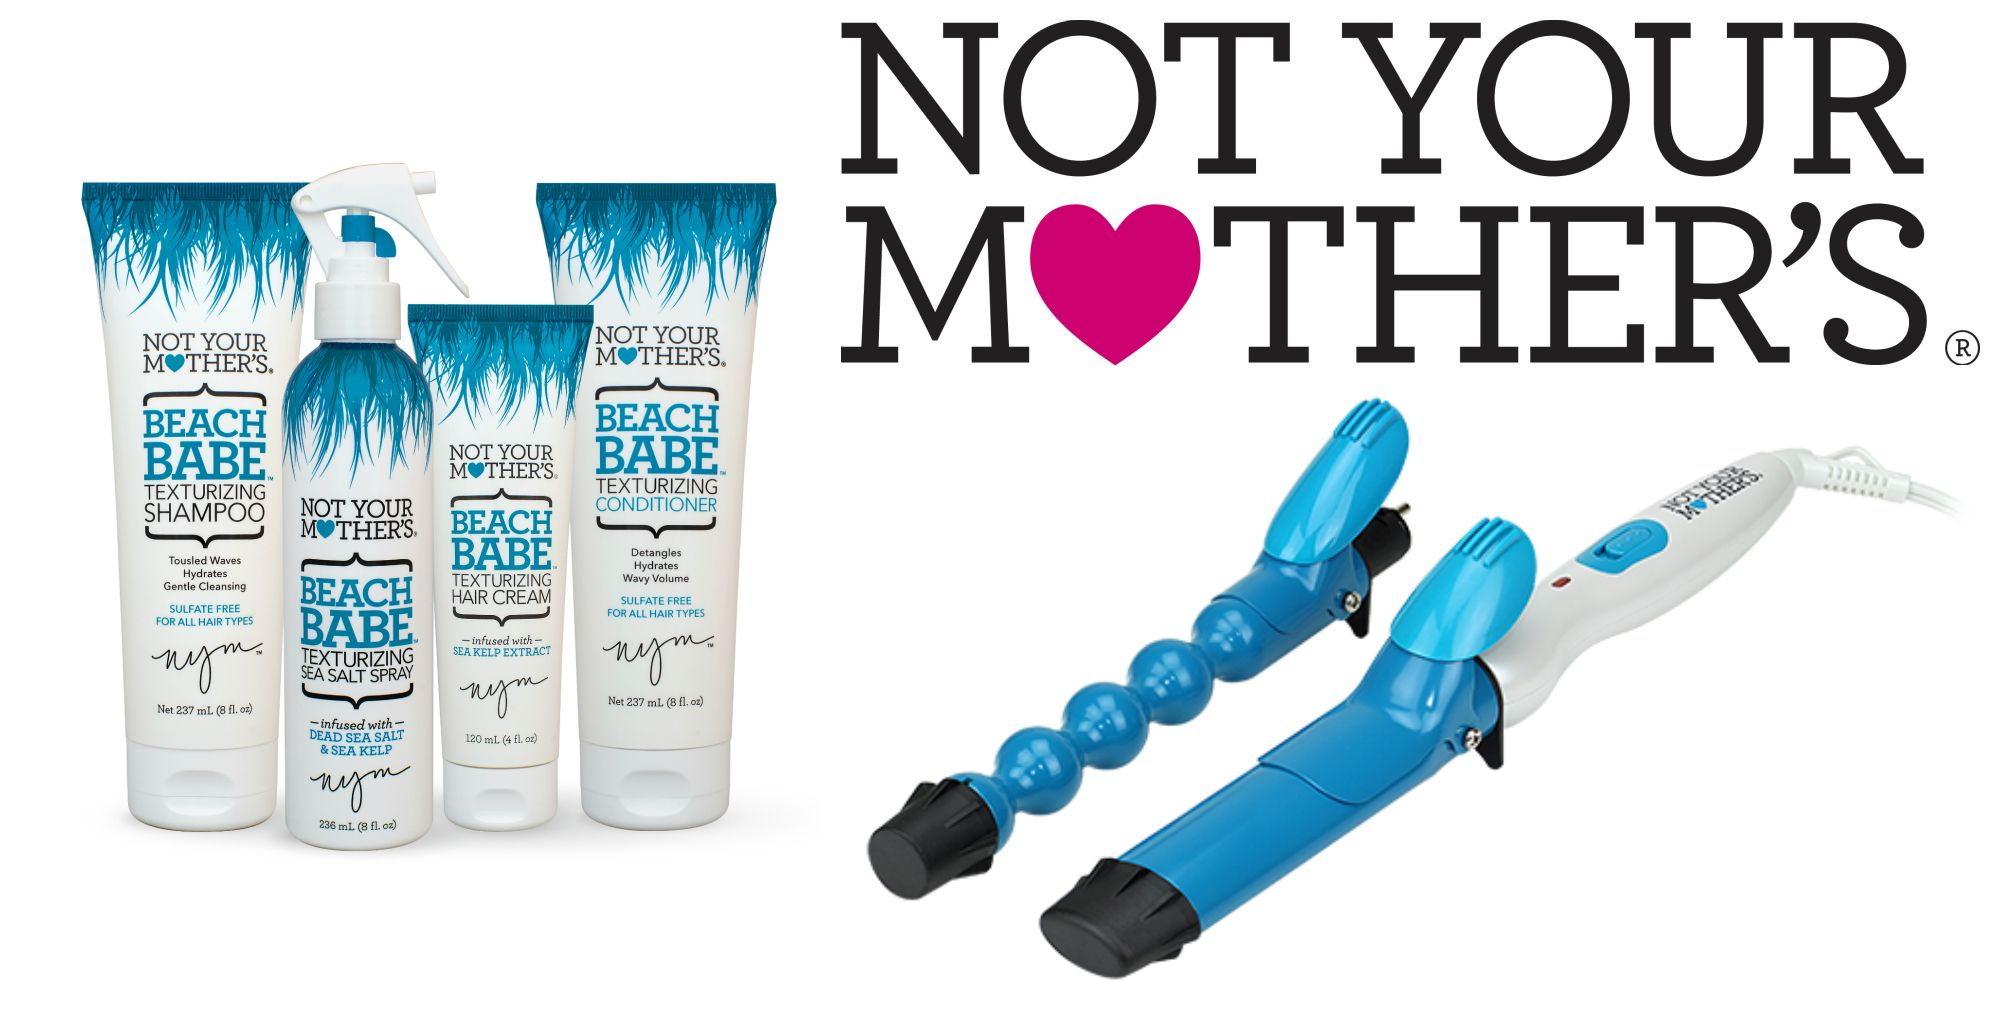 Not Your Mother's Beach Babe products and tool